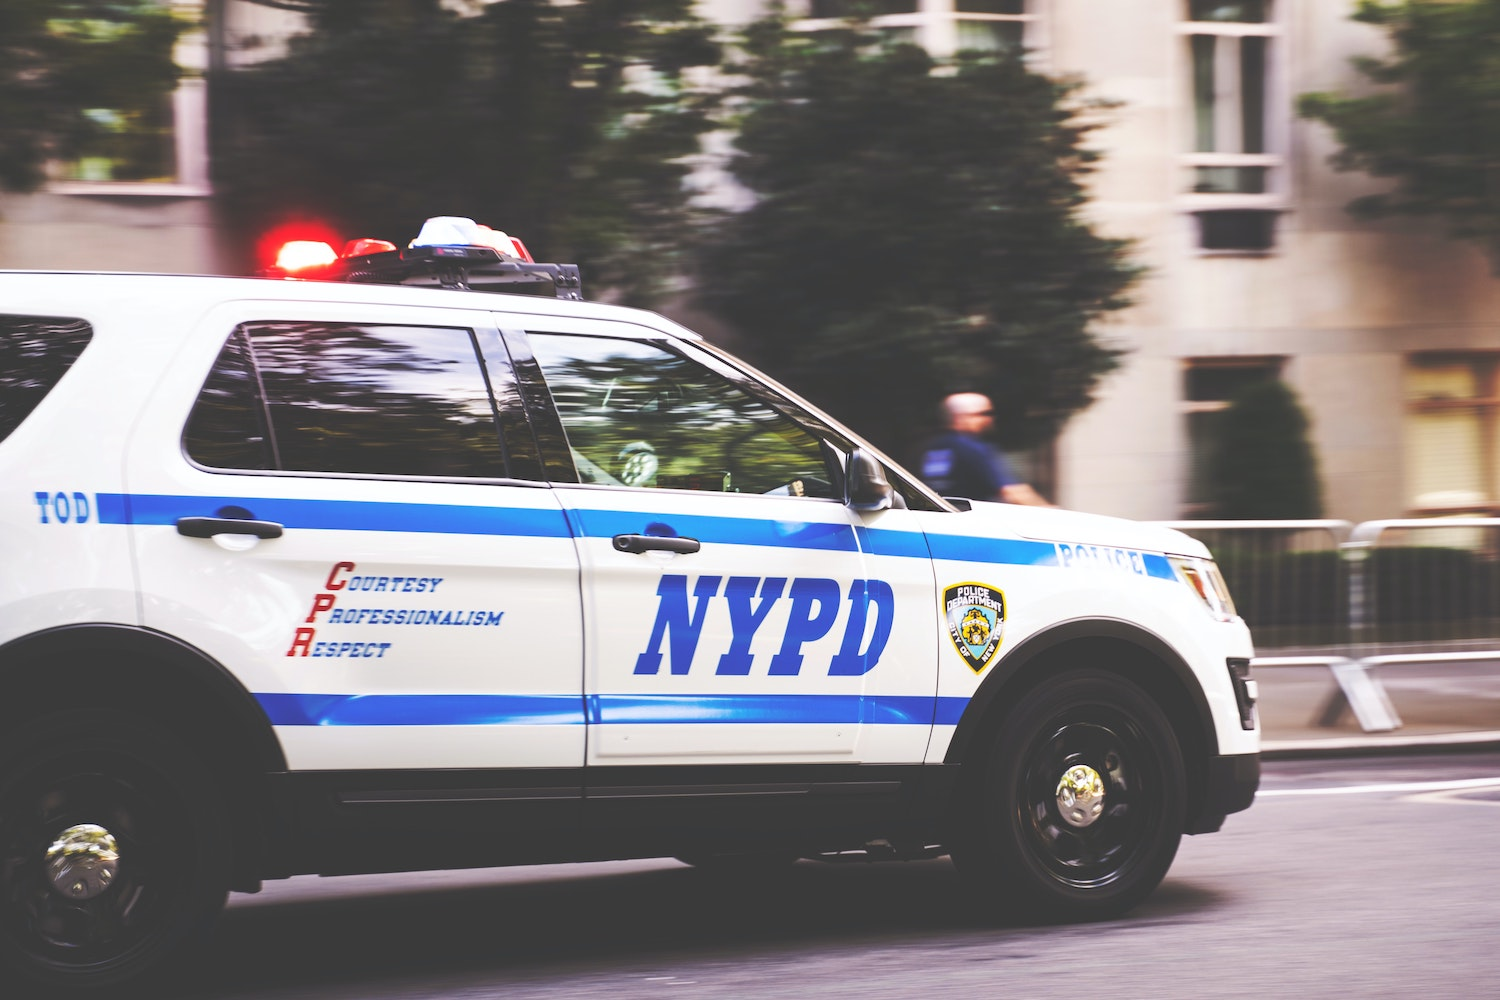 NYPD's Crypto Sleuthing Is Powered by Chainalysis, Documents Show